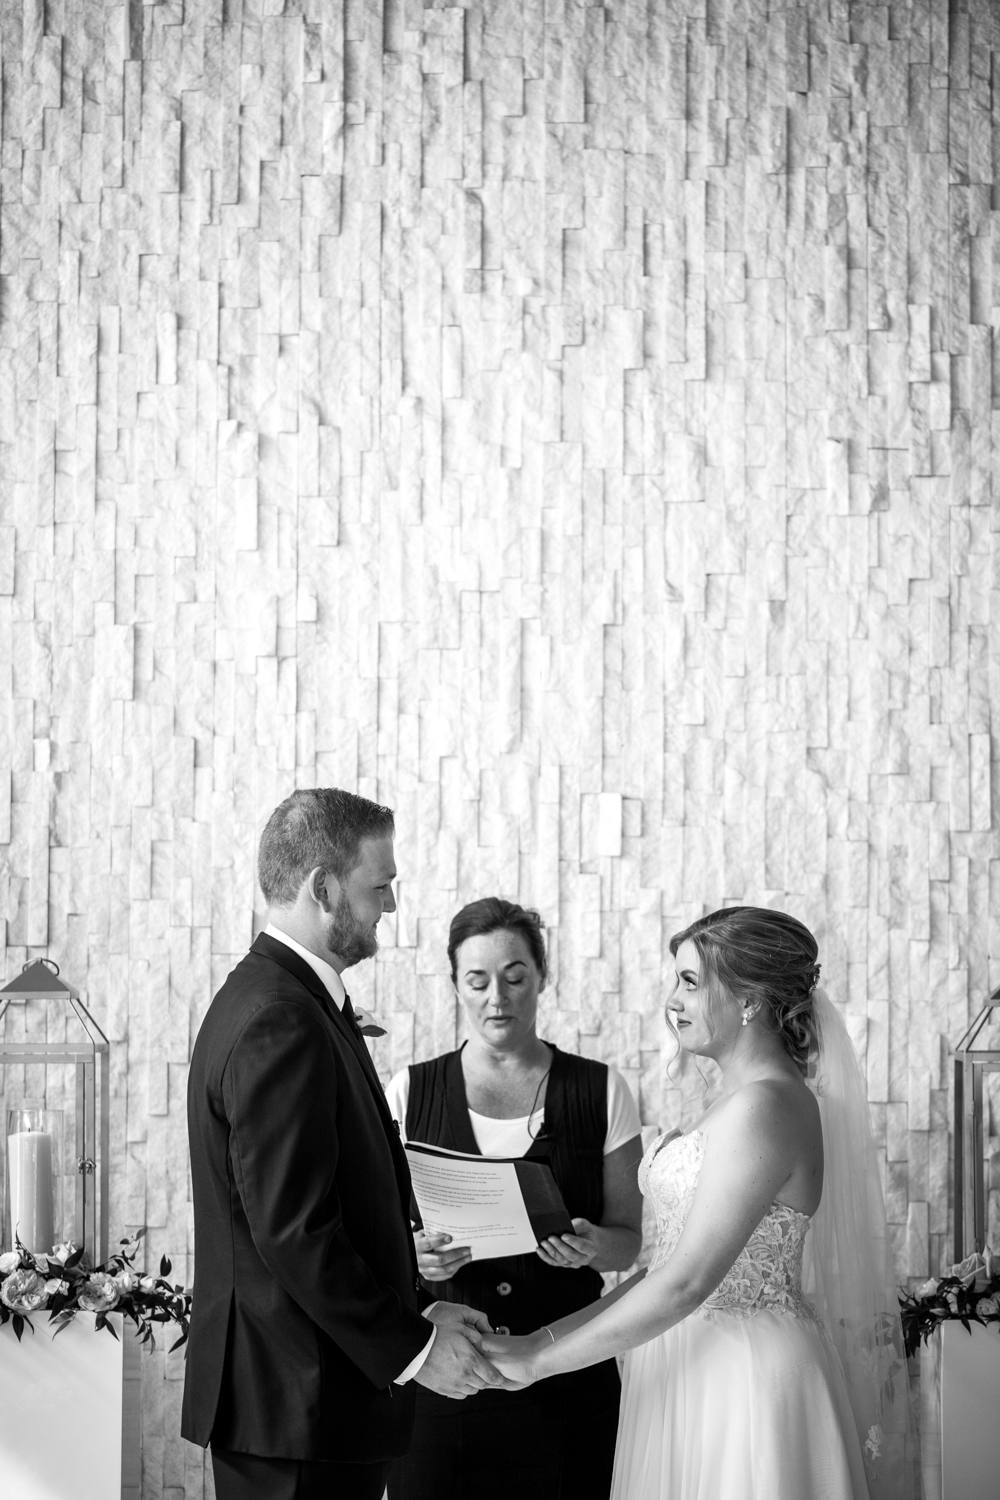 Downtown-Kamloops-Wedding-55.jpg